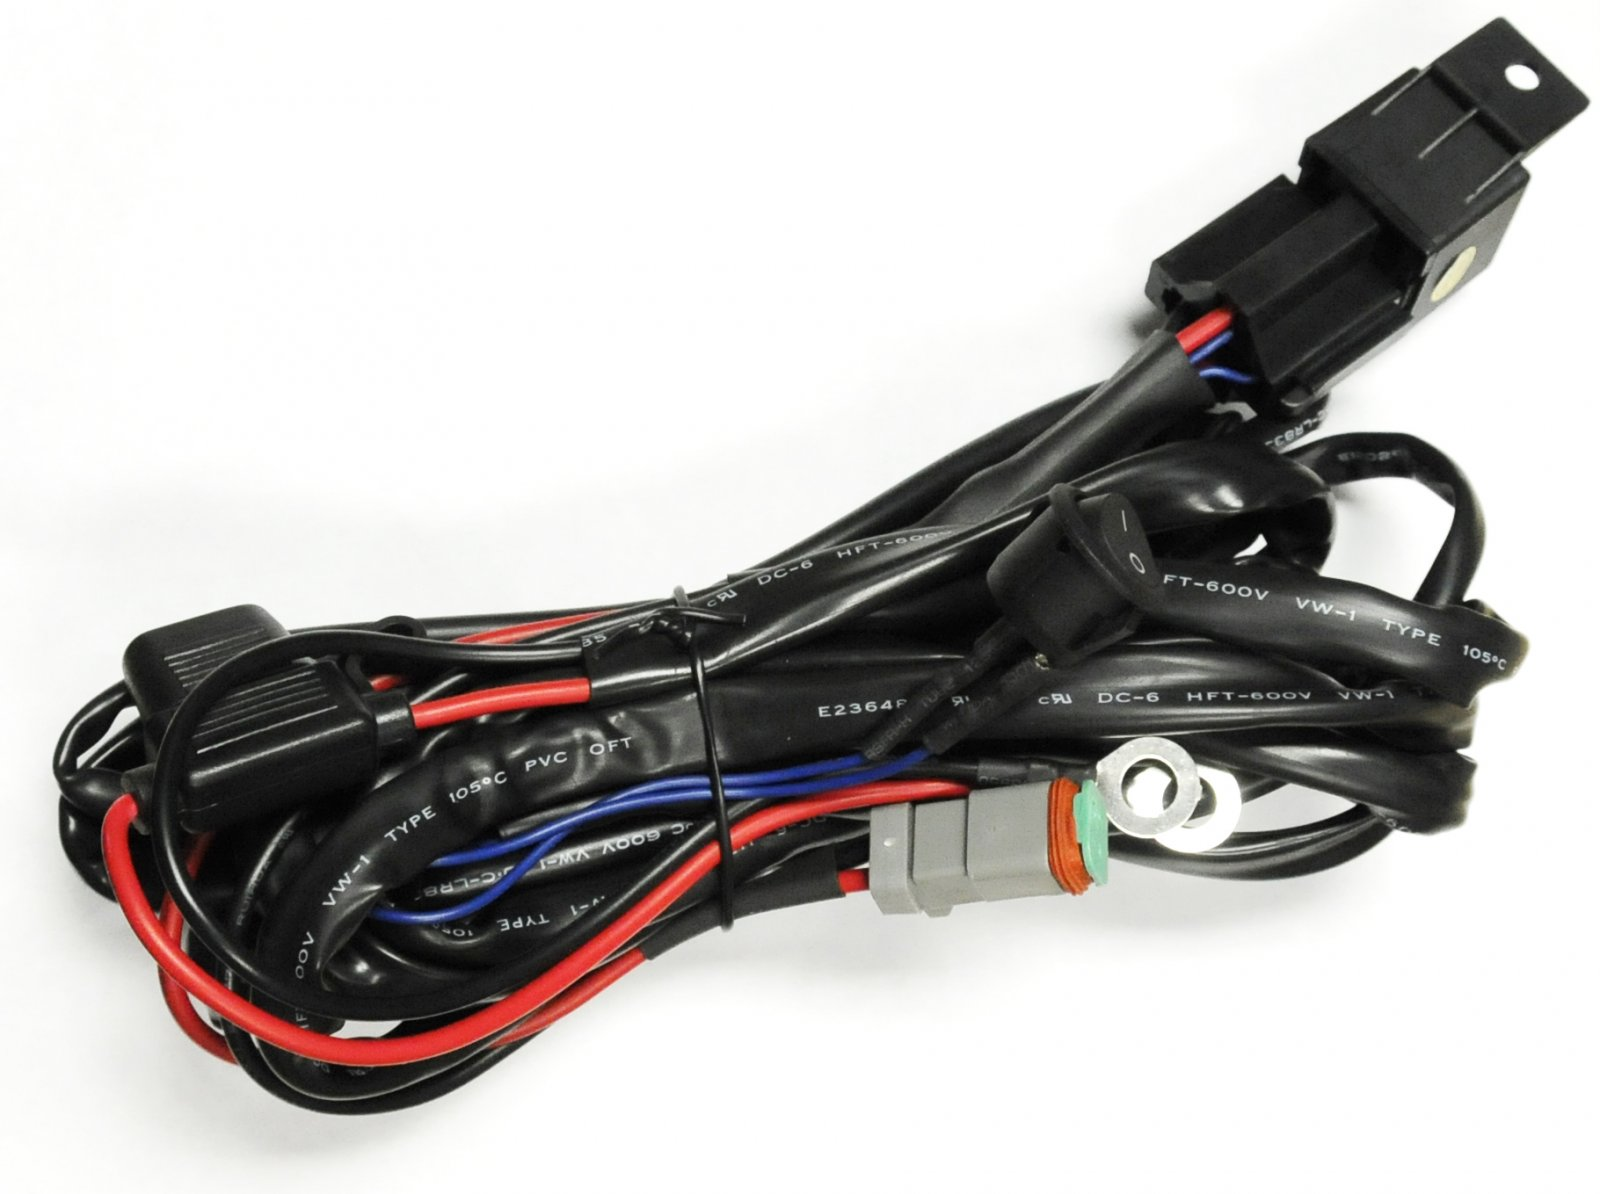 Universal Accessories Pure 4runner Parts And Led Wiring Kit With Relay Switch Black Diamond Xtreme Harness Includes On Off Relays Fuse Terminal